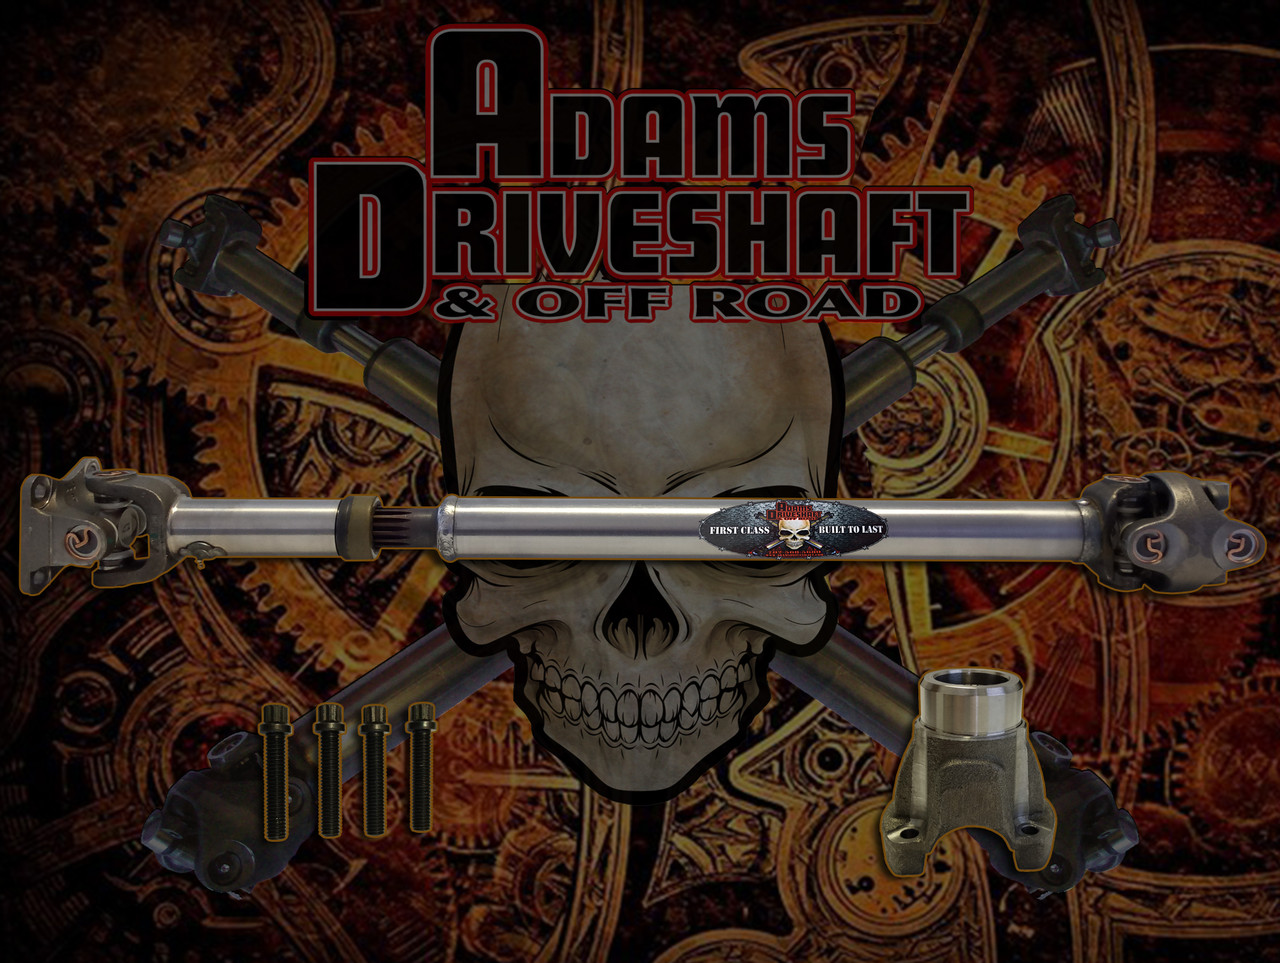 ADAMS DRIVESHAFT JT GLADIATOR FRONT 1310 CV DRIVESHAFT SOLID U-joints OEM  FLANGE STYLE [EXTREME DUTY SERIES]